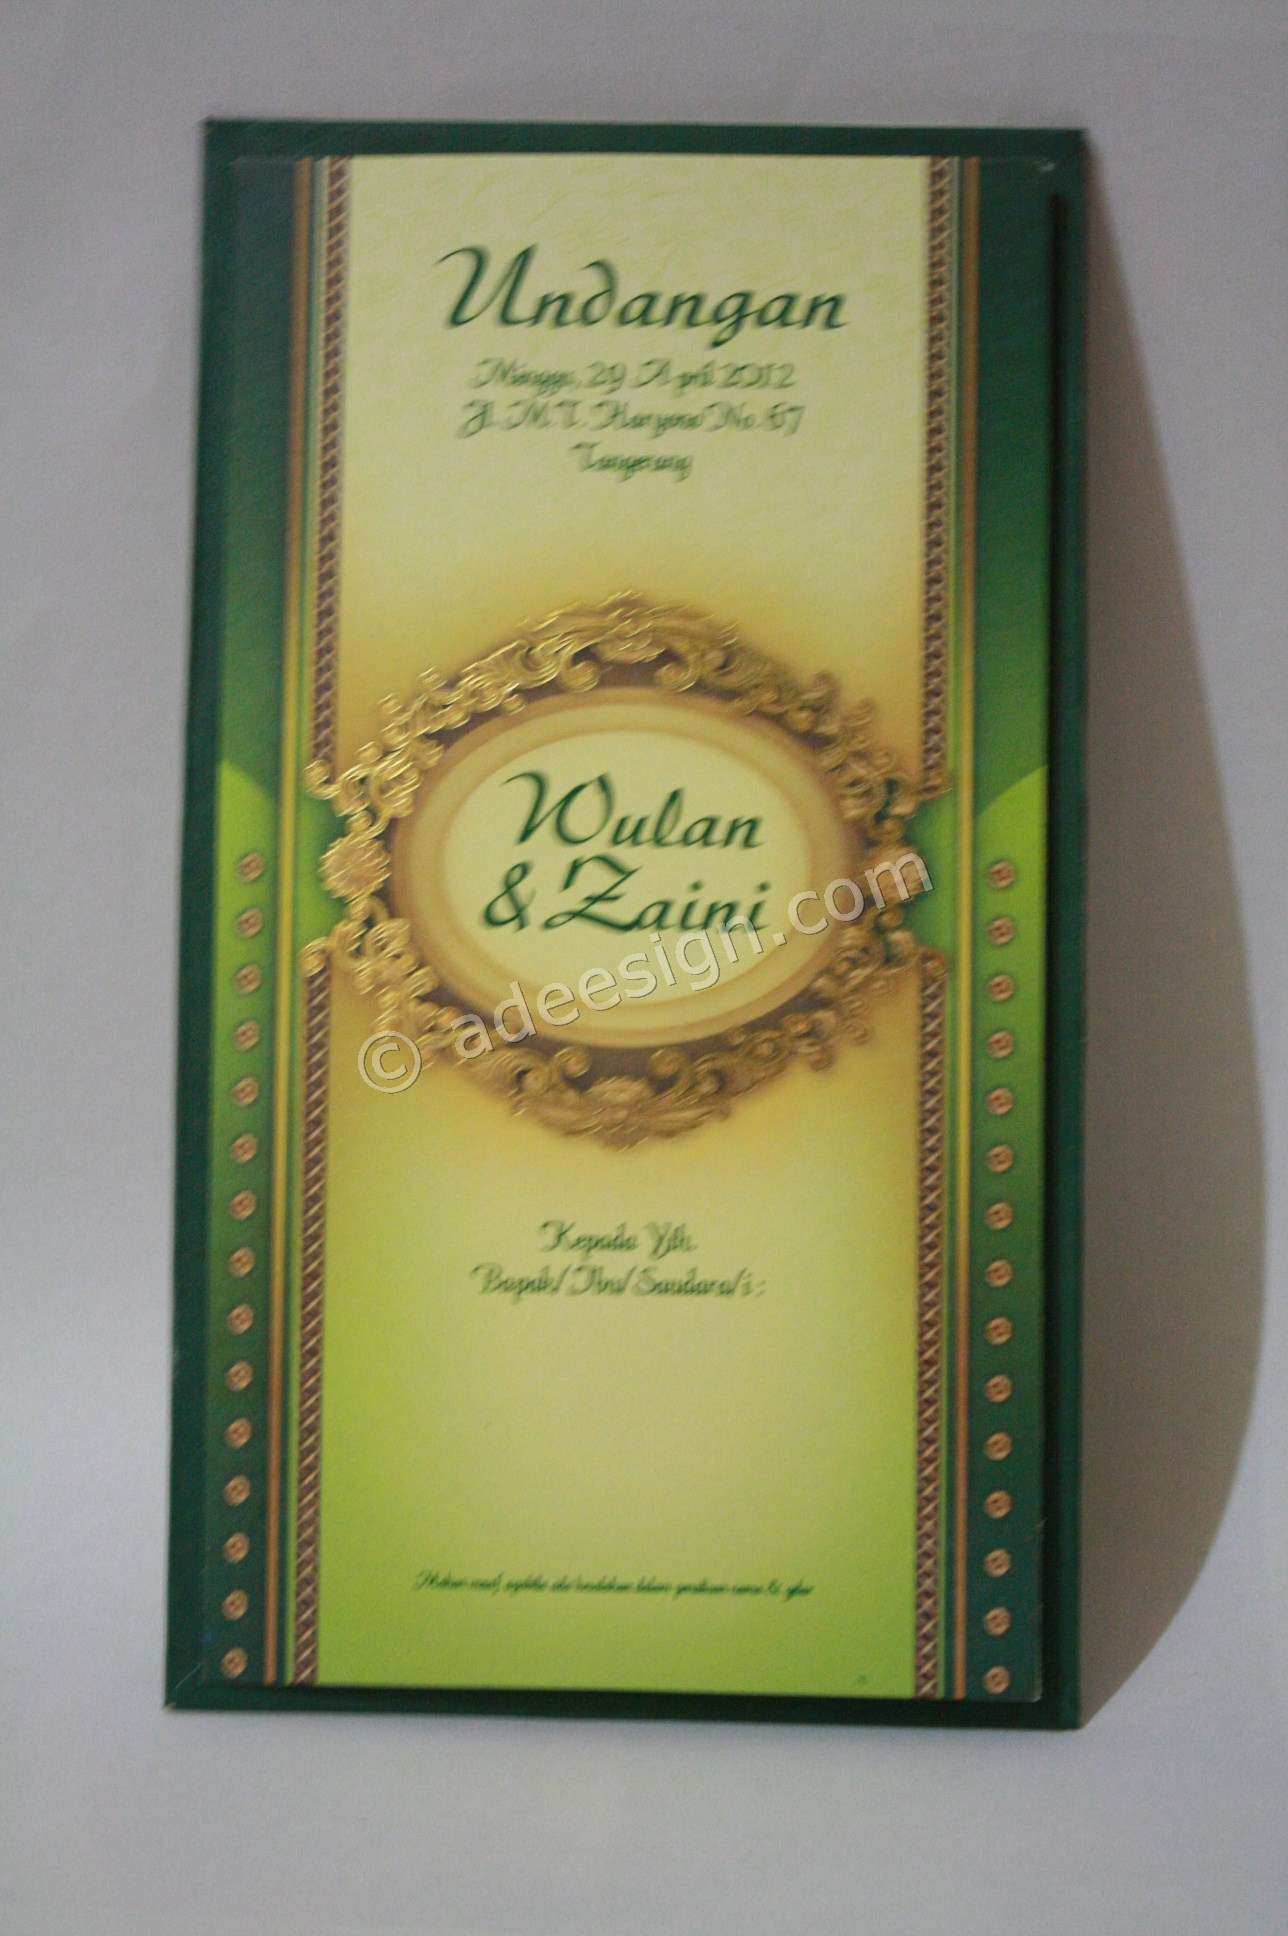 Kartu Undangan Pernikahan Semi Hard Cover Wulan dan Zaini 1 - Percetakan Wedding Invitations Simple dan Elegan di Putat Jaya